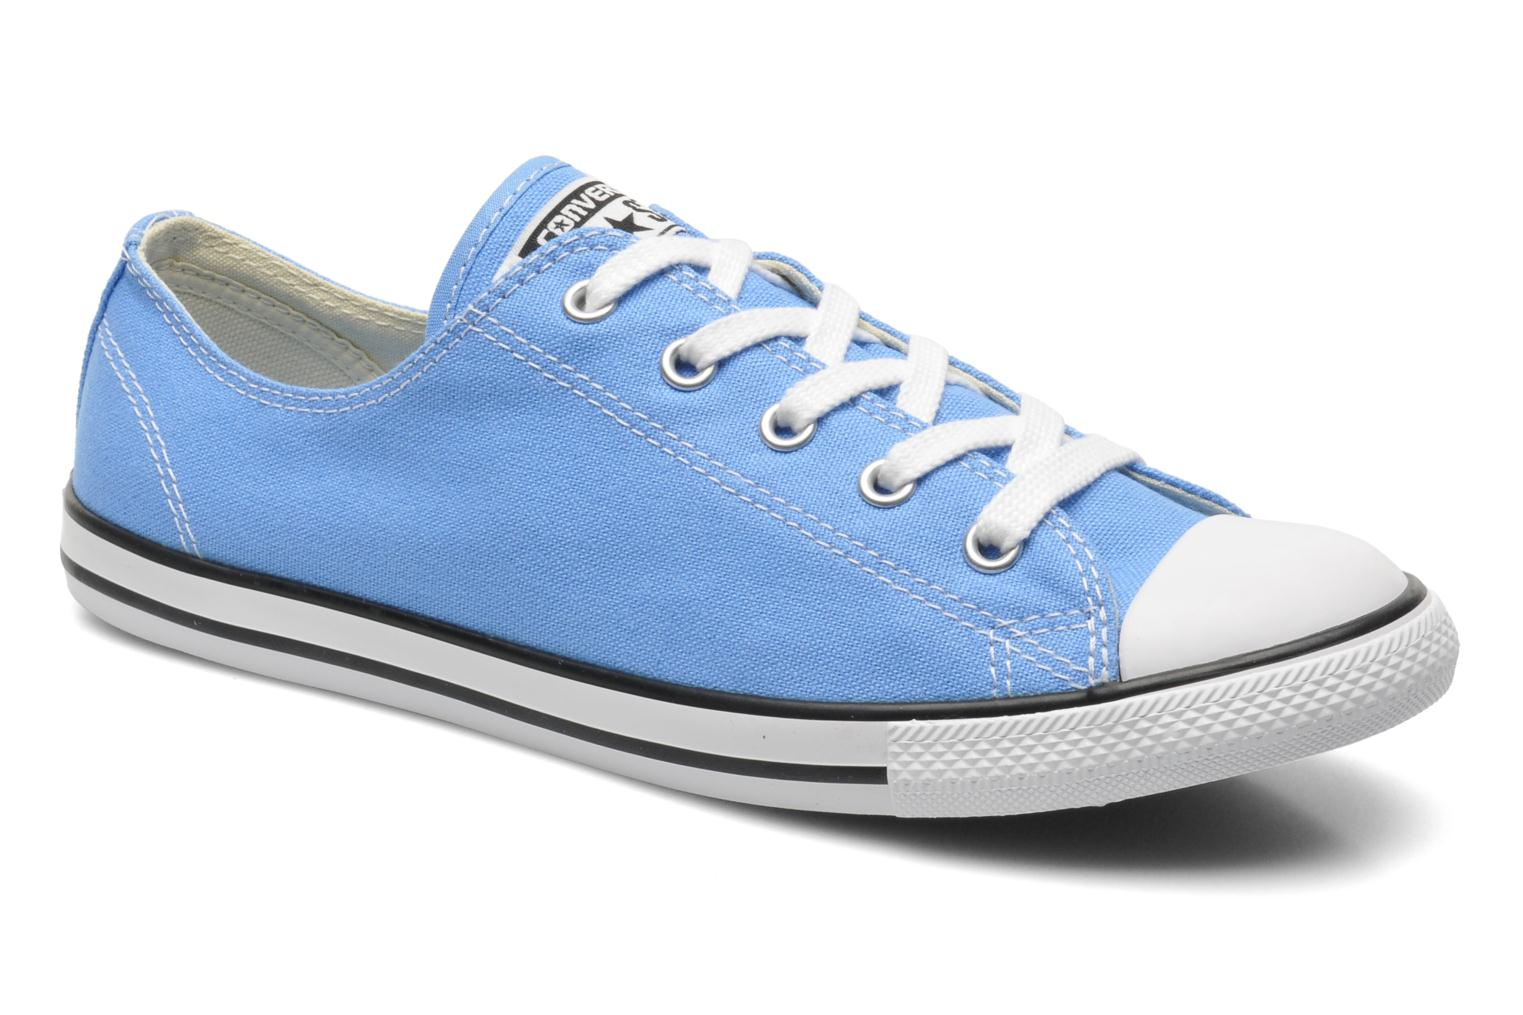 All Star Dainty Canvas Ox W Bleu ciel